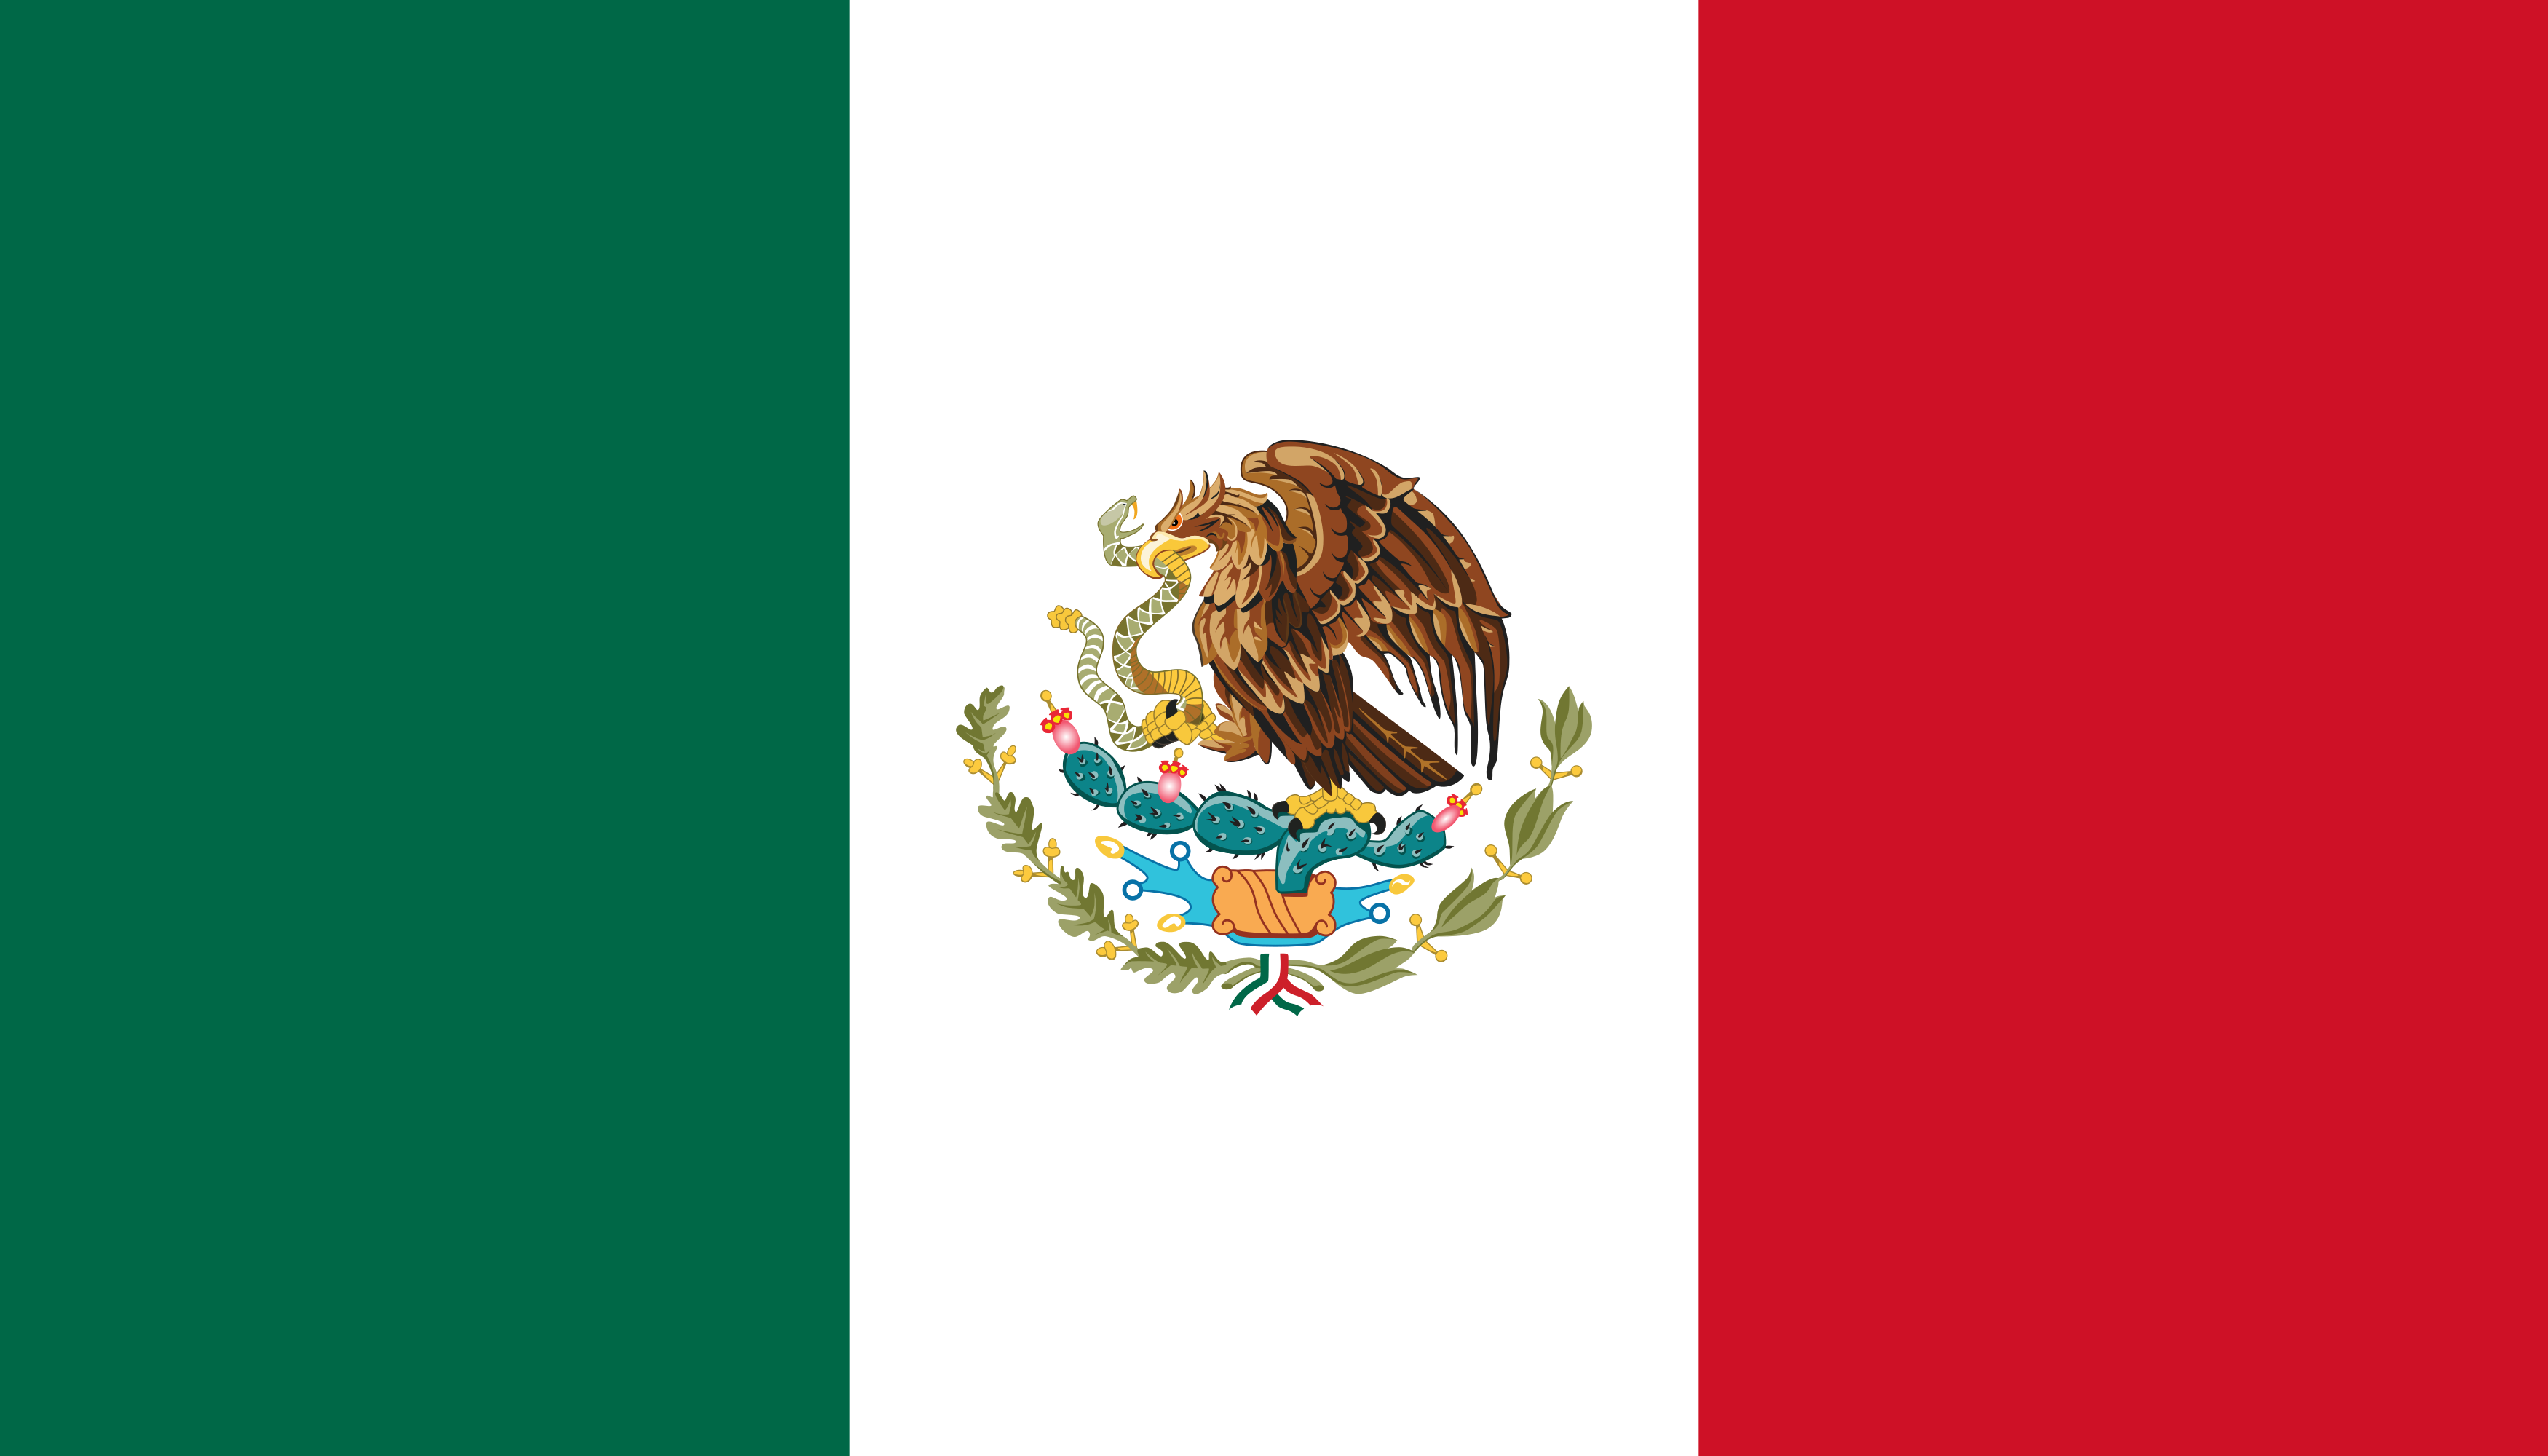 bandeira do mexico - Bandeira do México